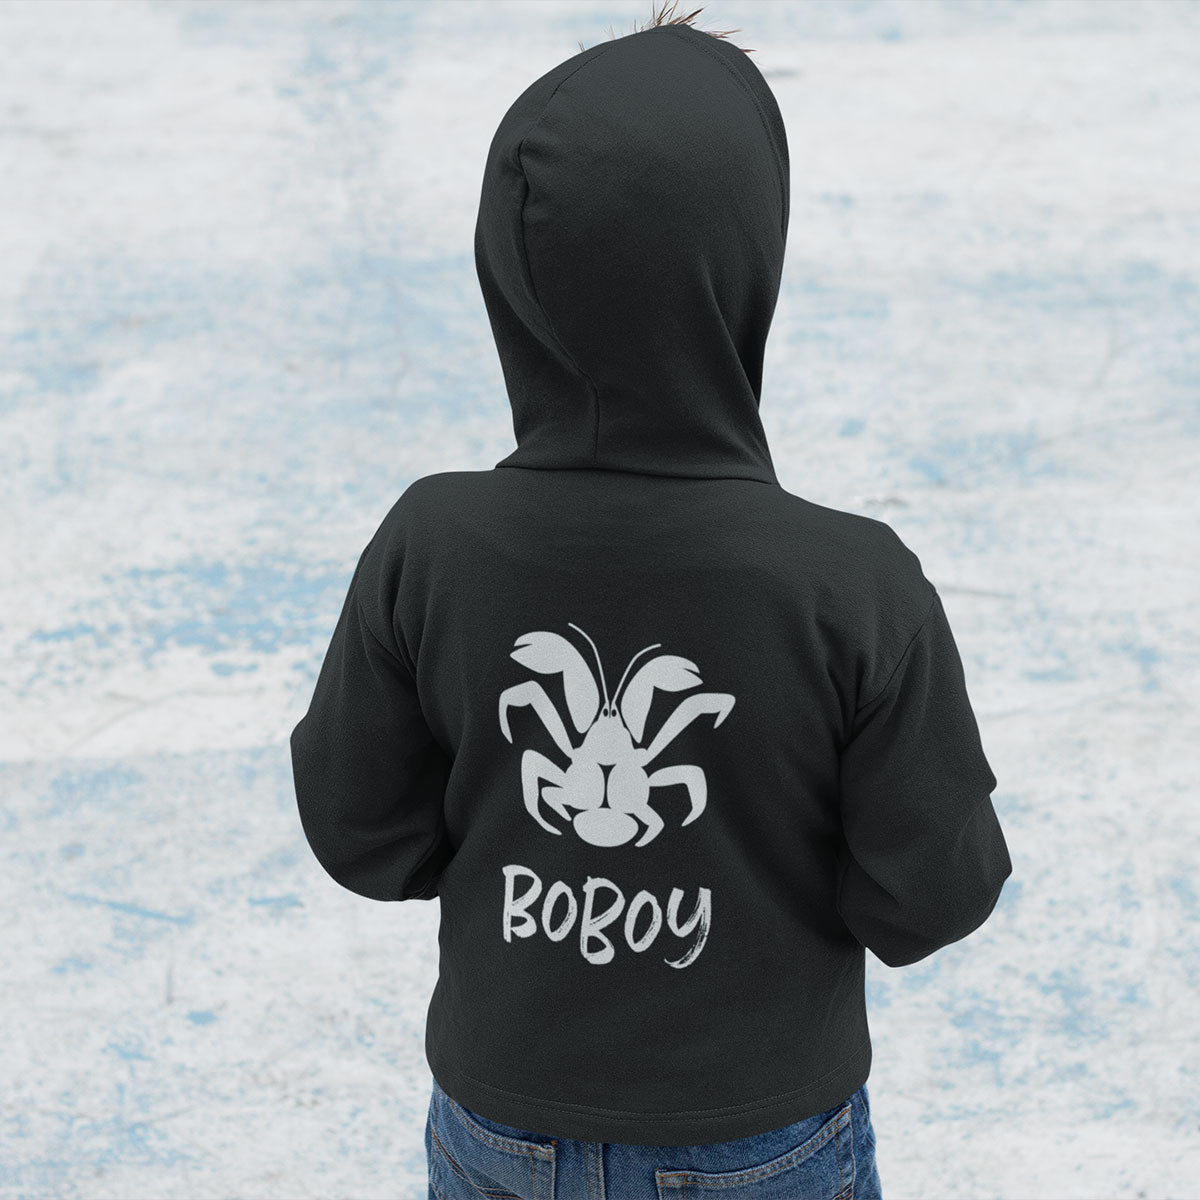 Coconut Crab Boboy Guam Seal Zip Hoodie Jacket